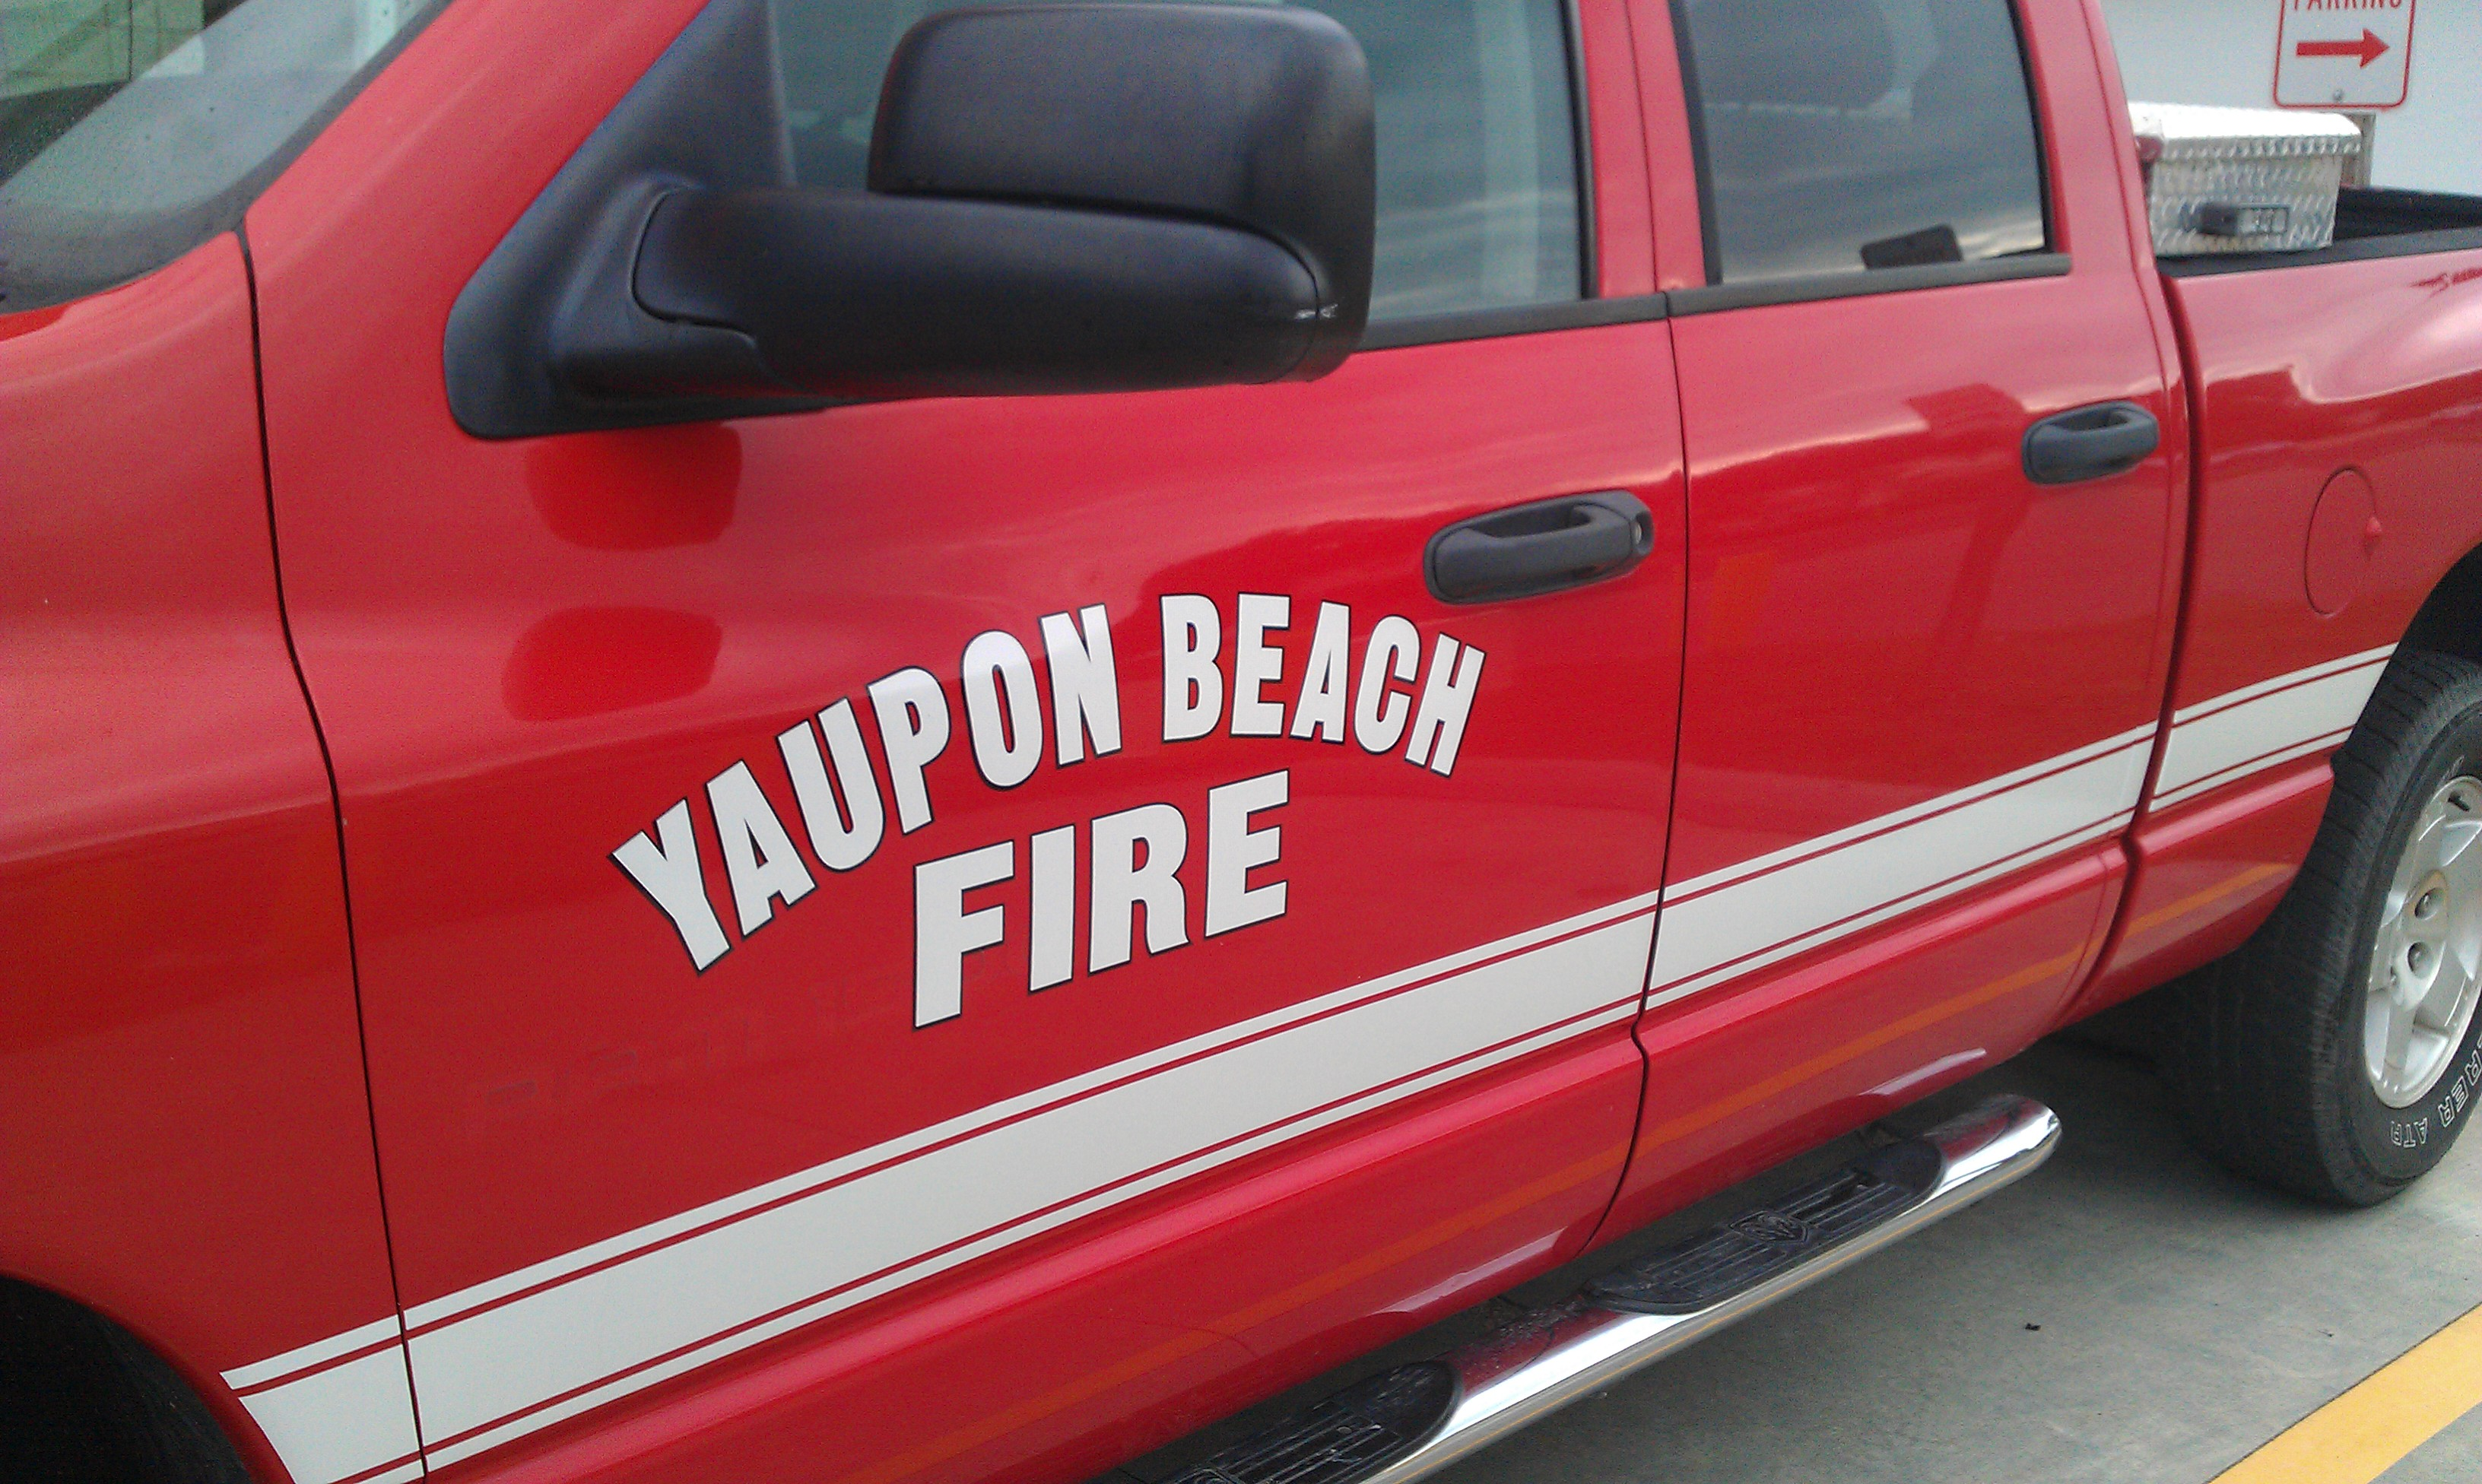 Yaupon Beach Fire Truck Decal